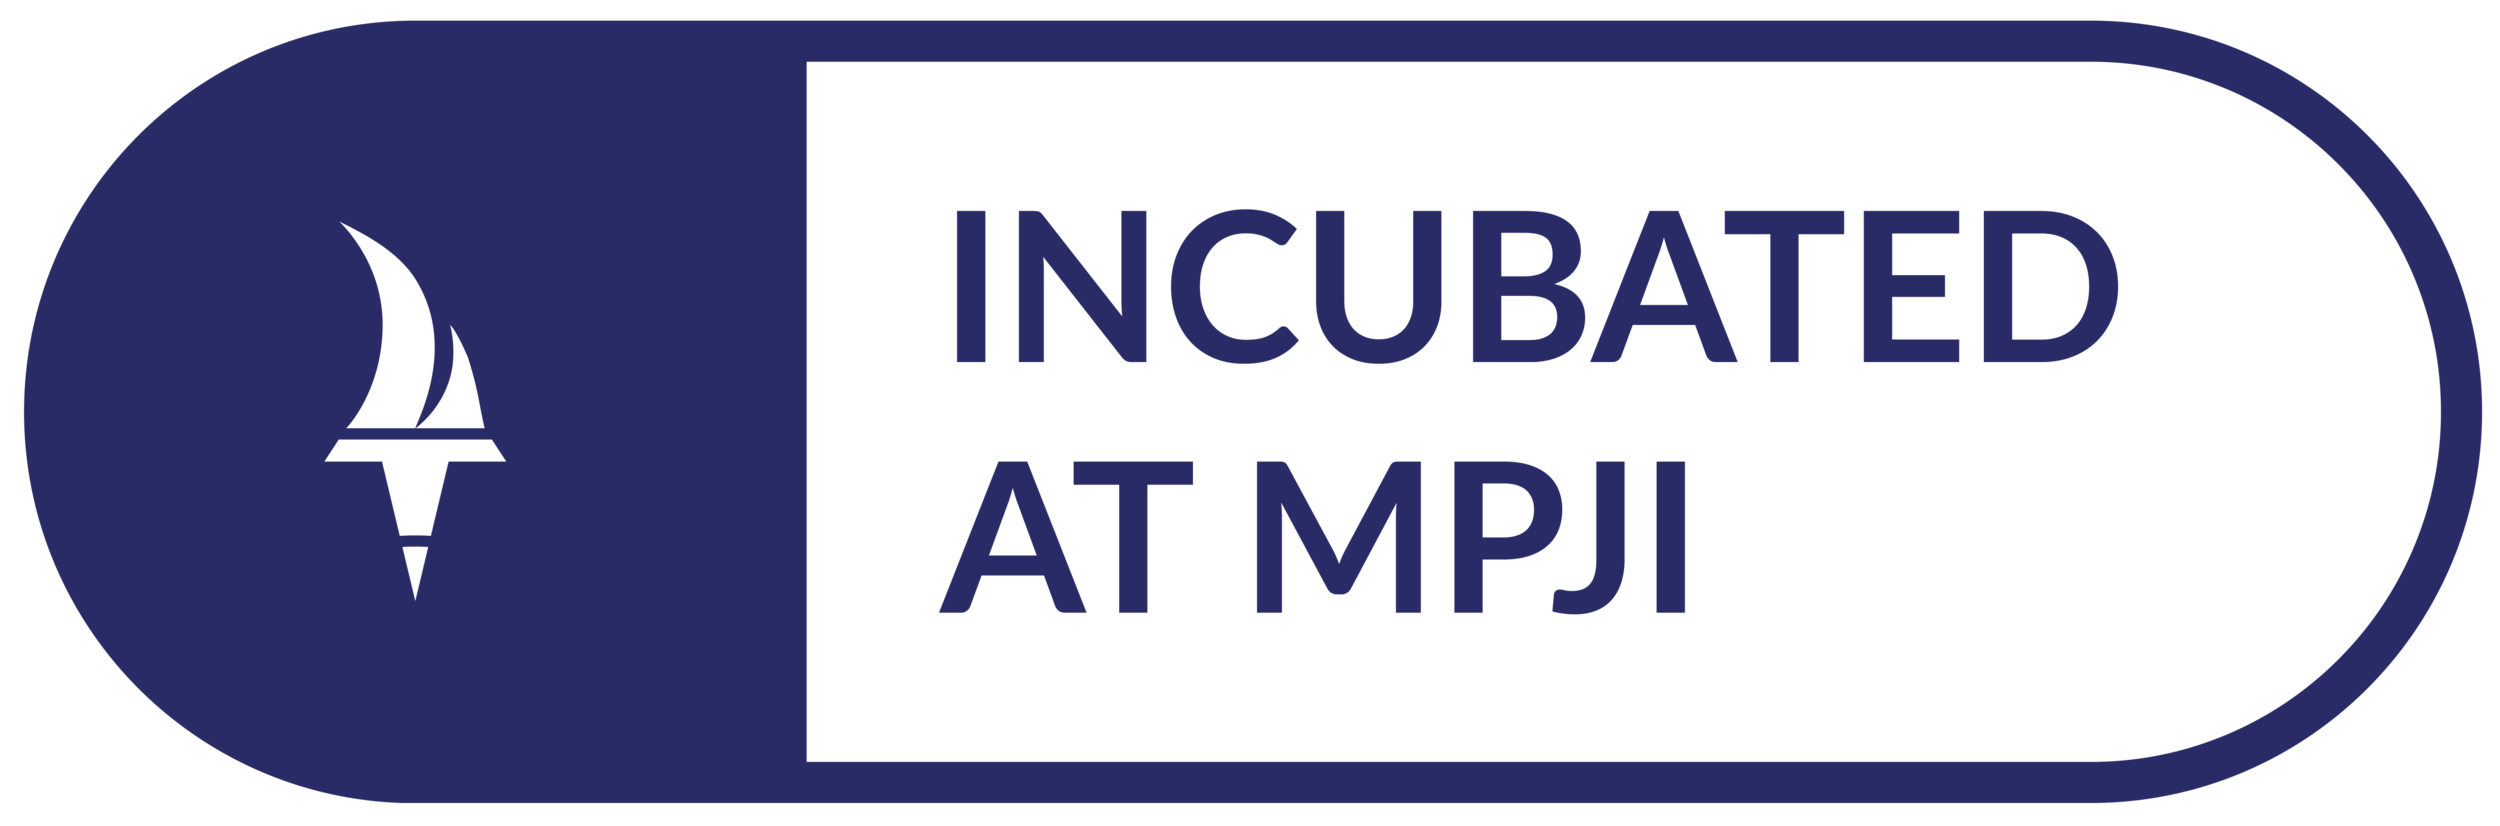 INCUBATED AT MPJI-01.png